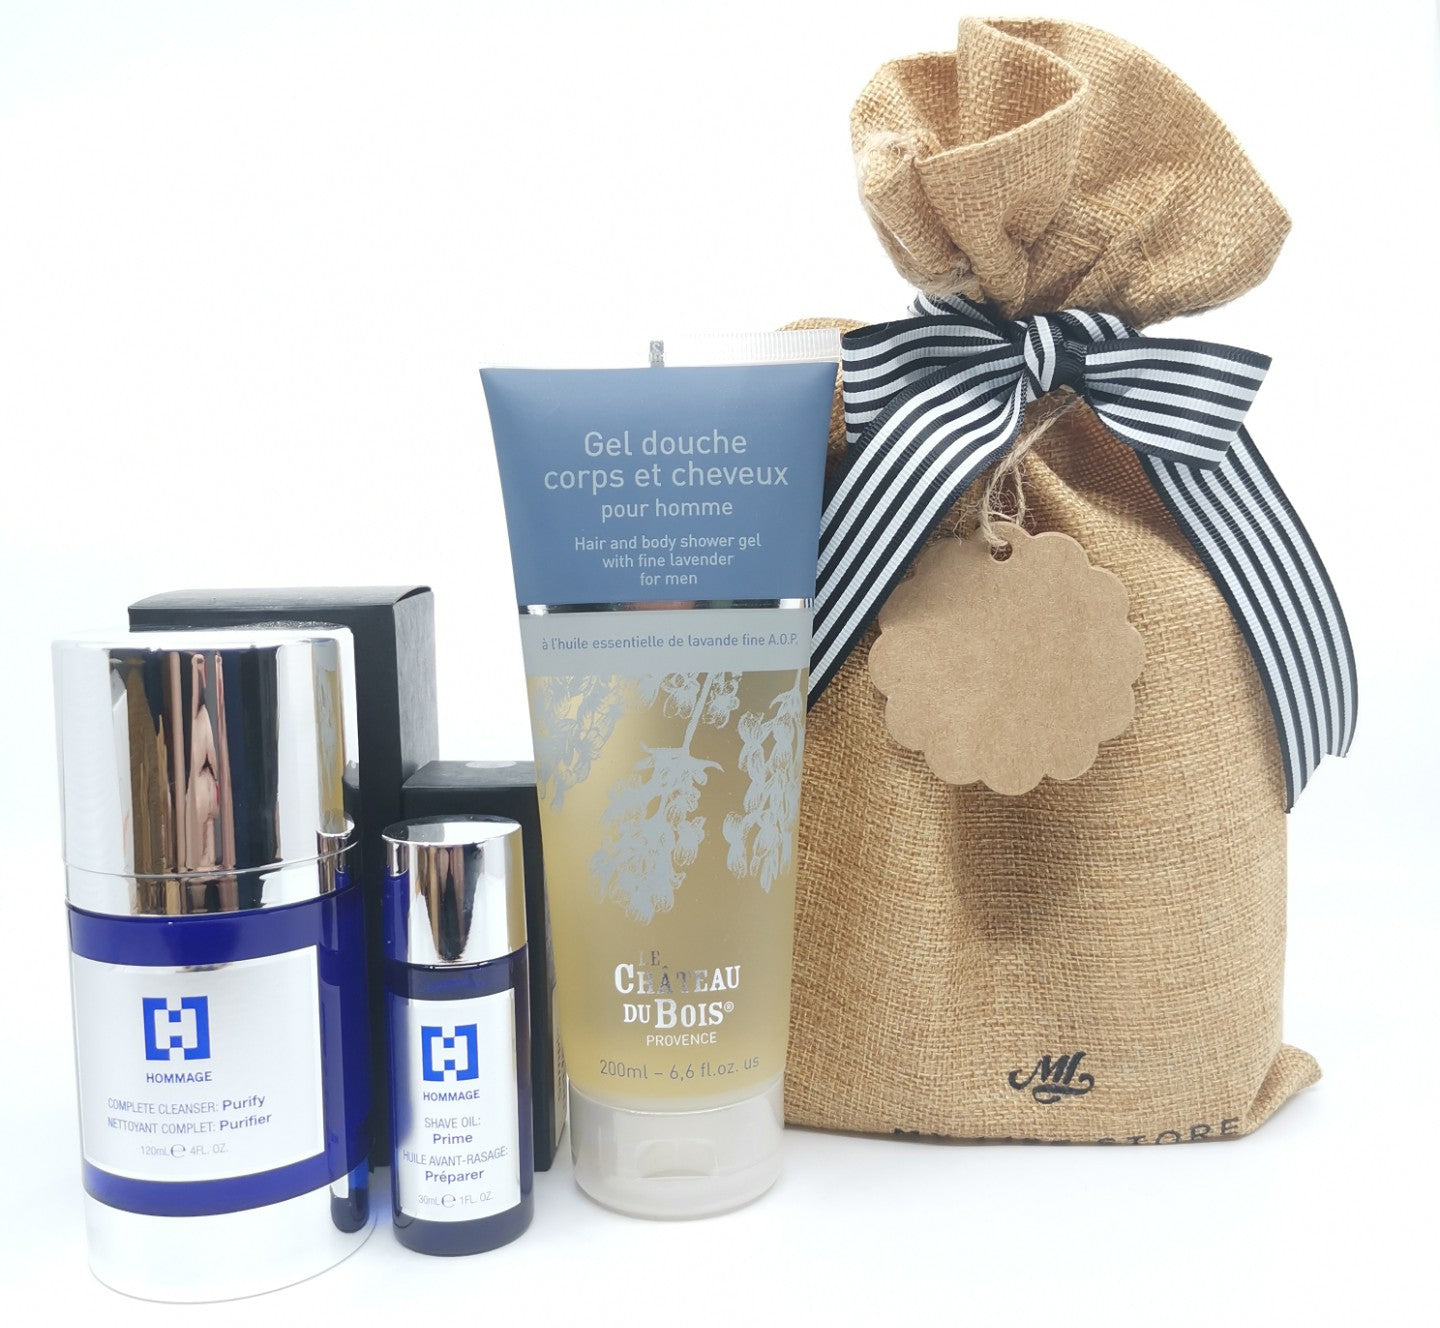 The Gentleman Gift Set